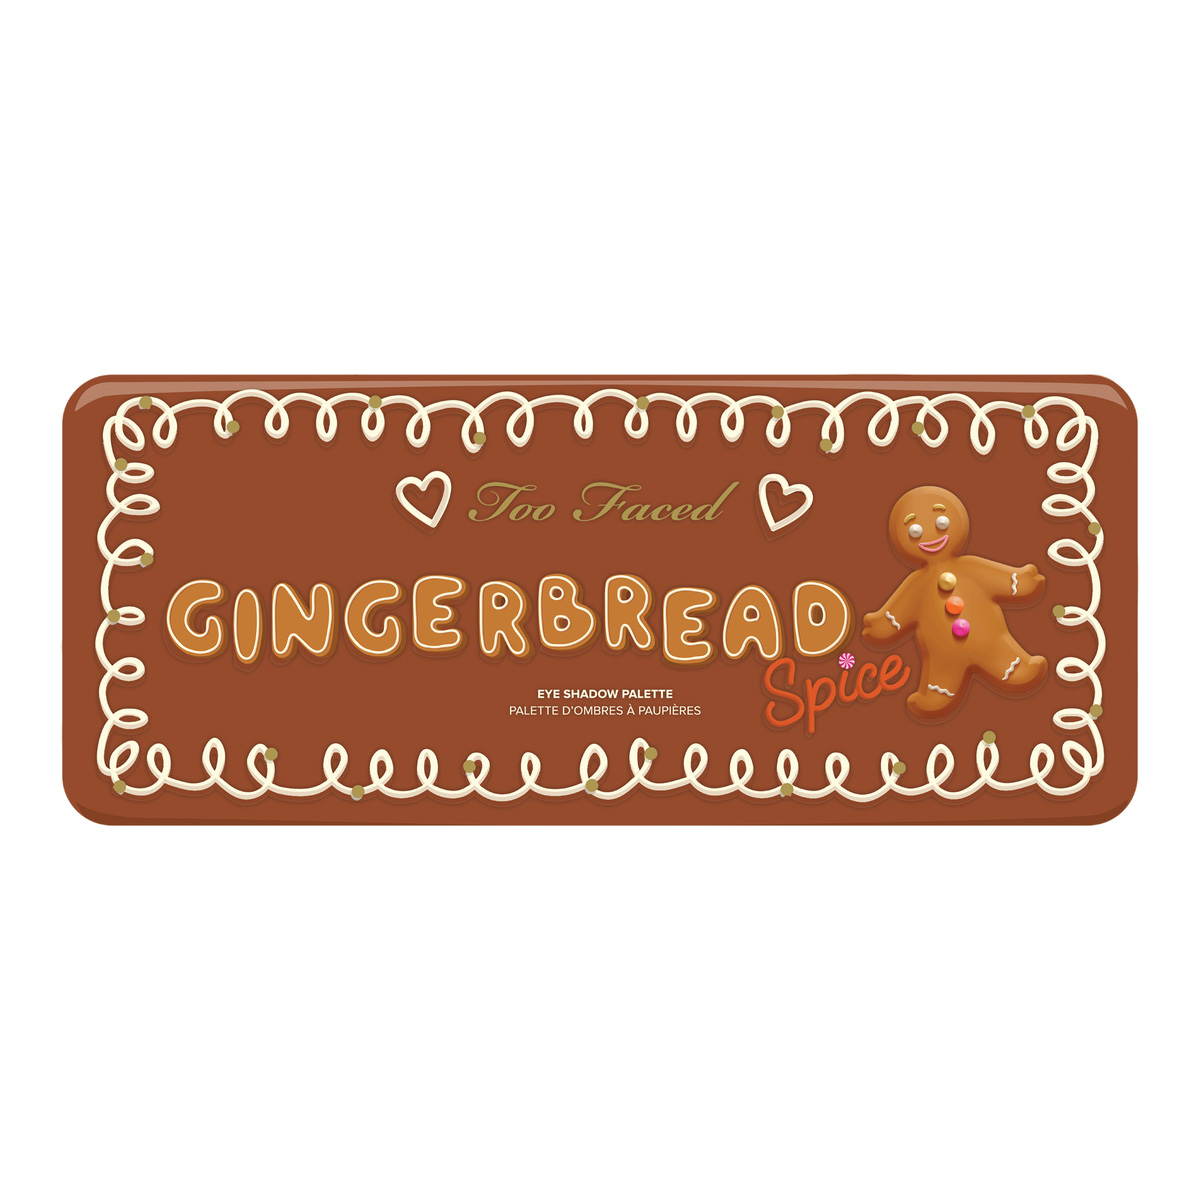 too-faced-gingerbread-spice-eyeshadow-palette-2